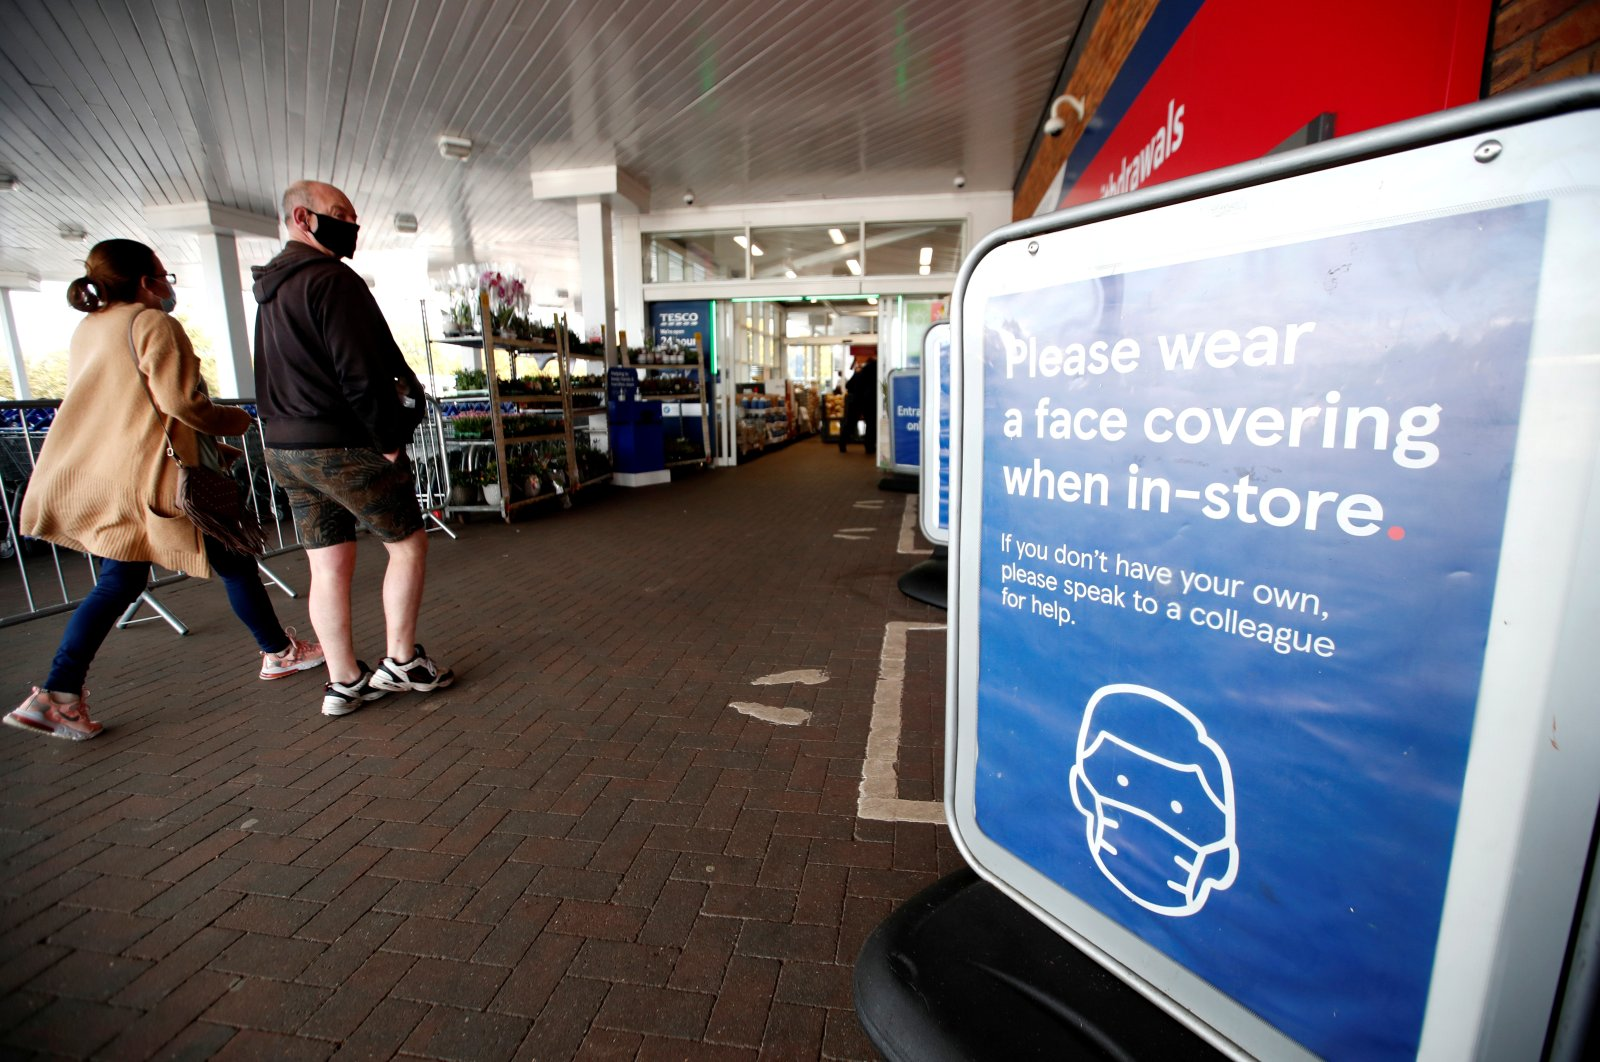 A sign requests people to wear masks at the entrance to a Tesco supermarket in Hatfield, the U.K., Oct. 6, 2020. (Reuters Photo)